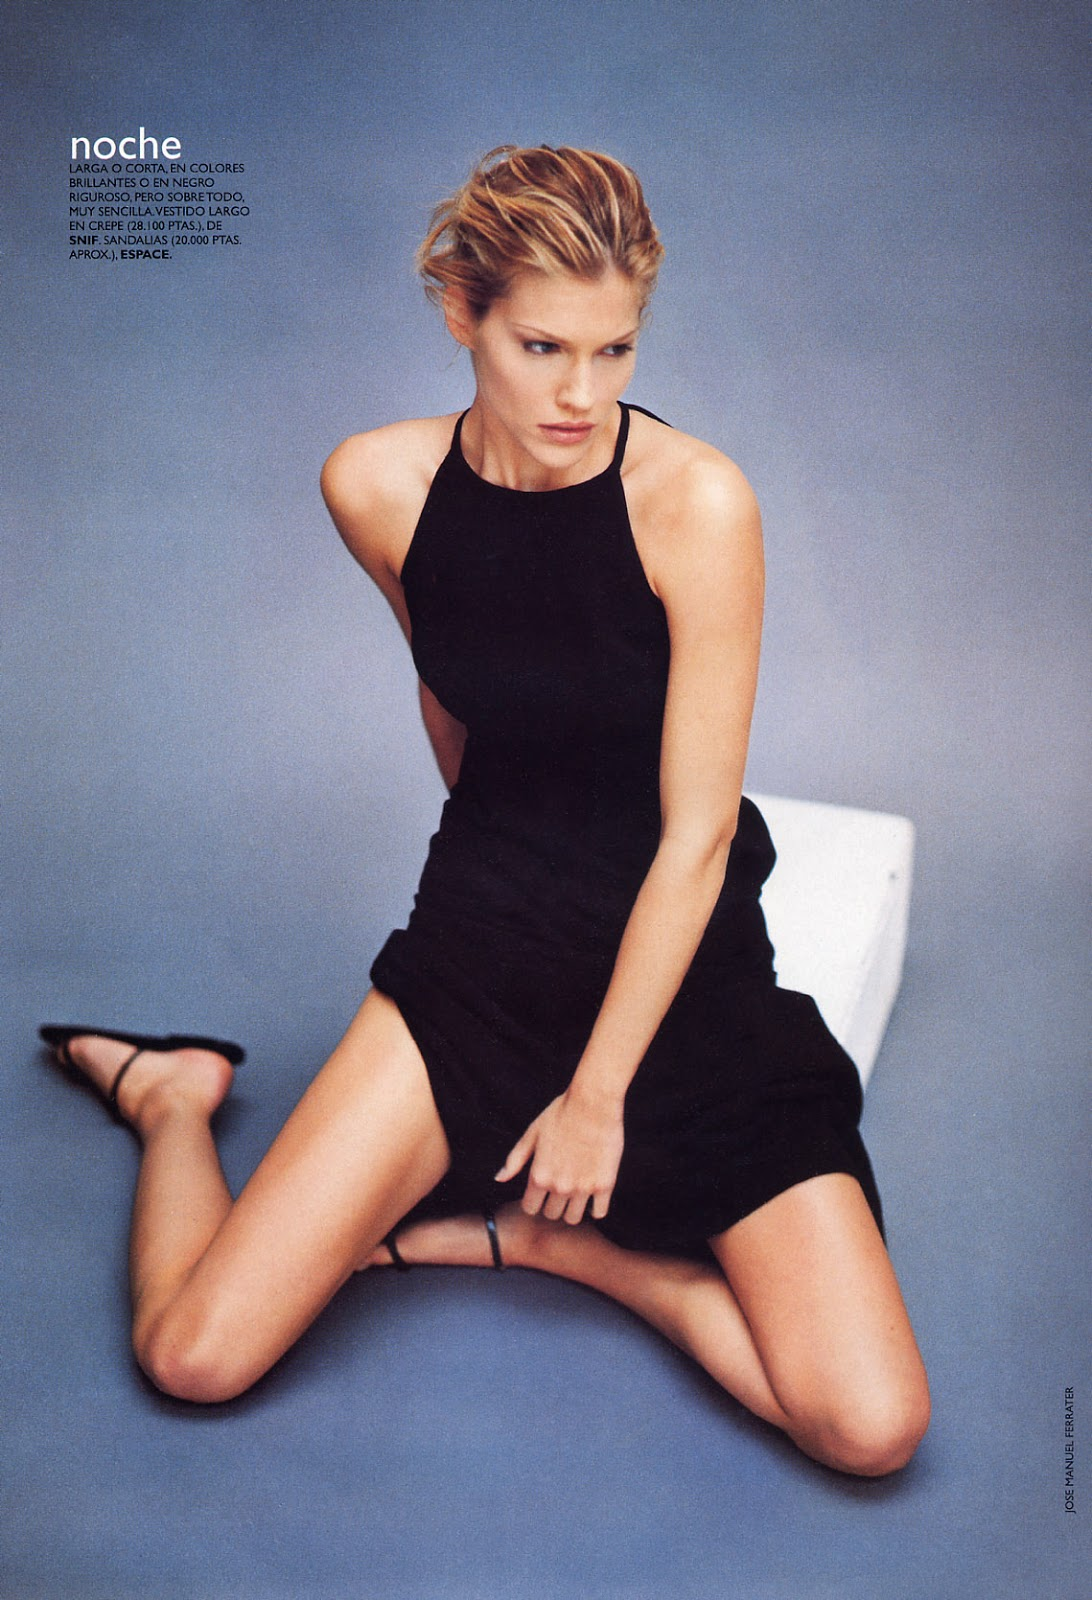 Tricia Helfer CAN 2 1997-1998 naked (76 photo), Topless, Hot, Feet, underwear 2020